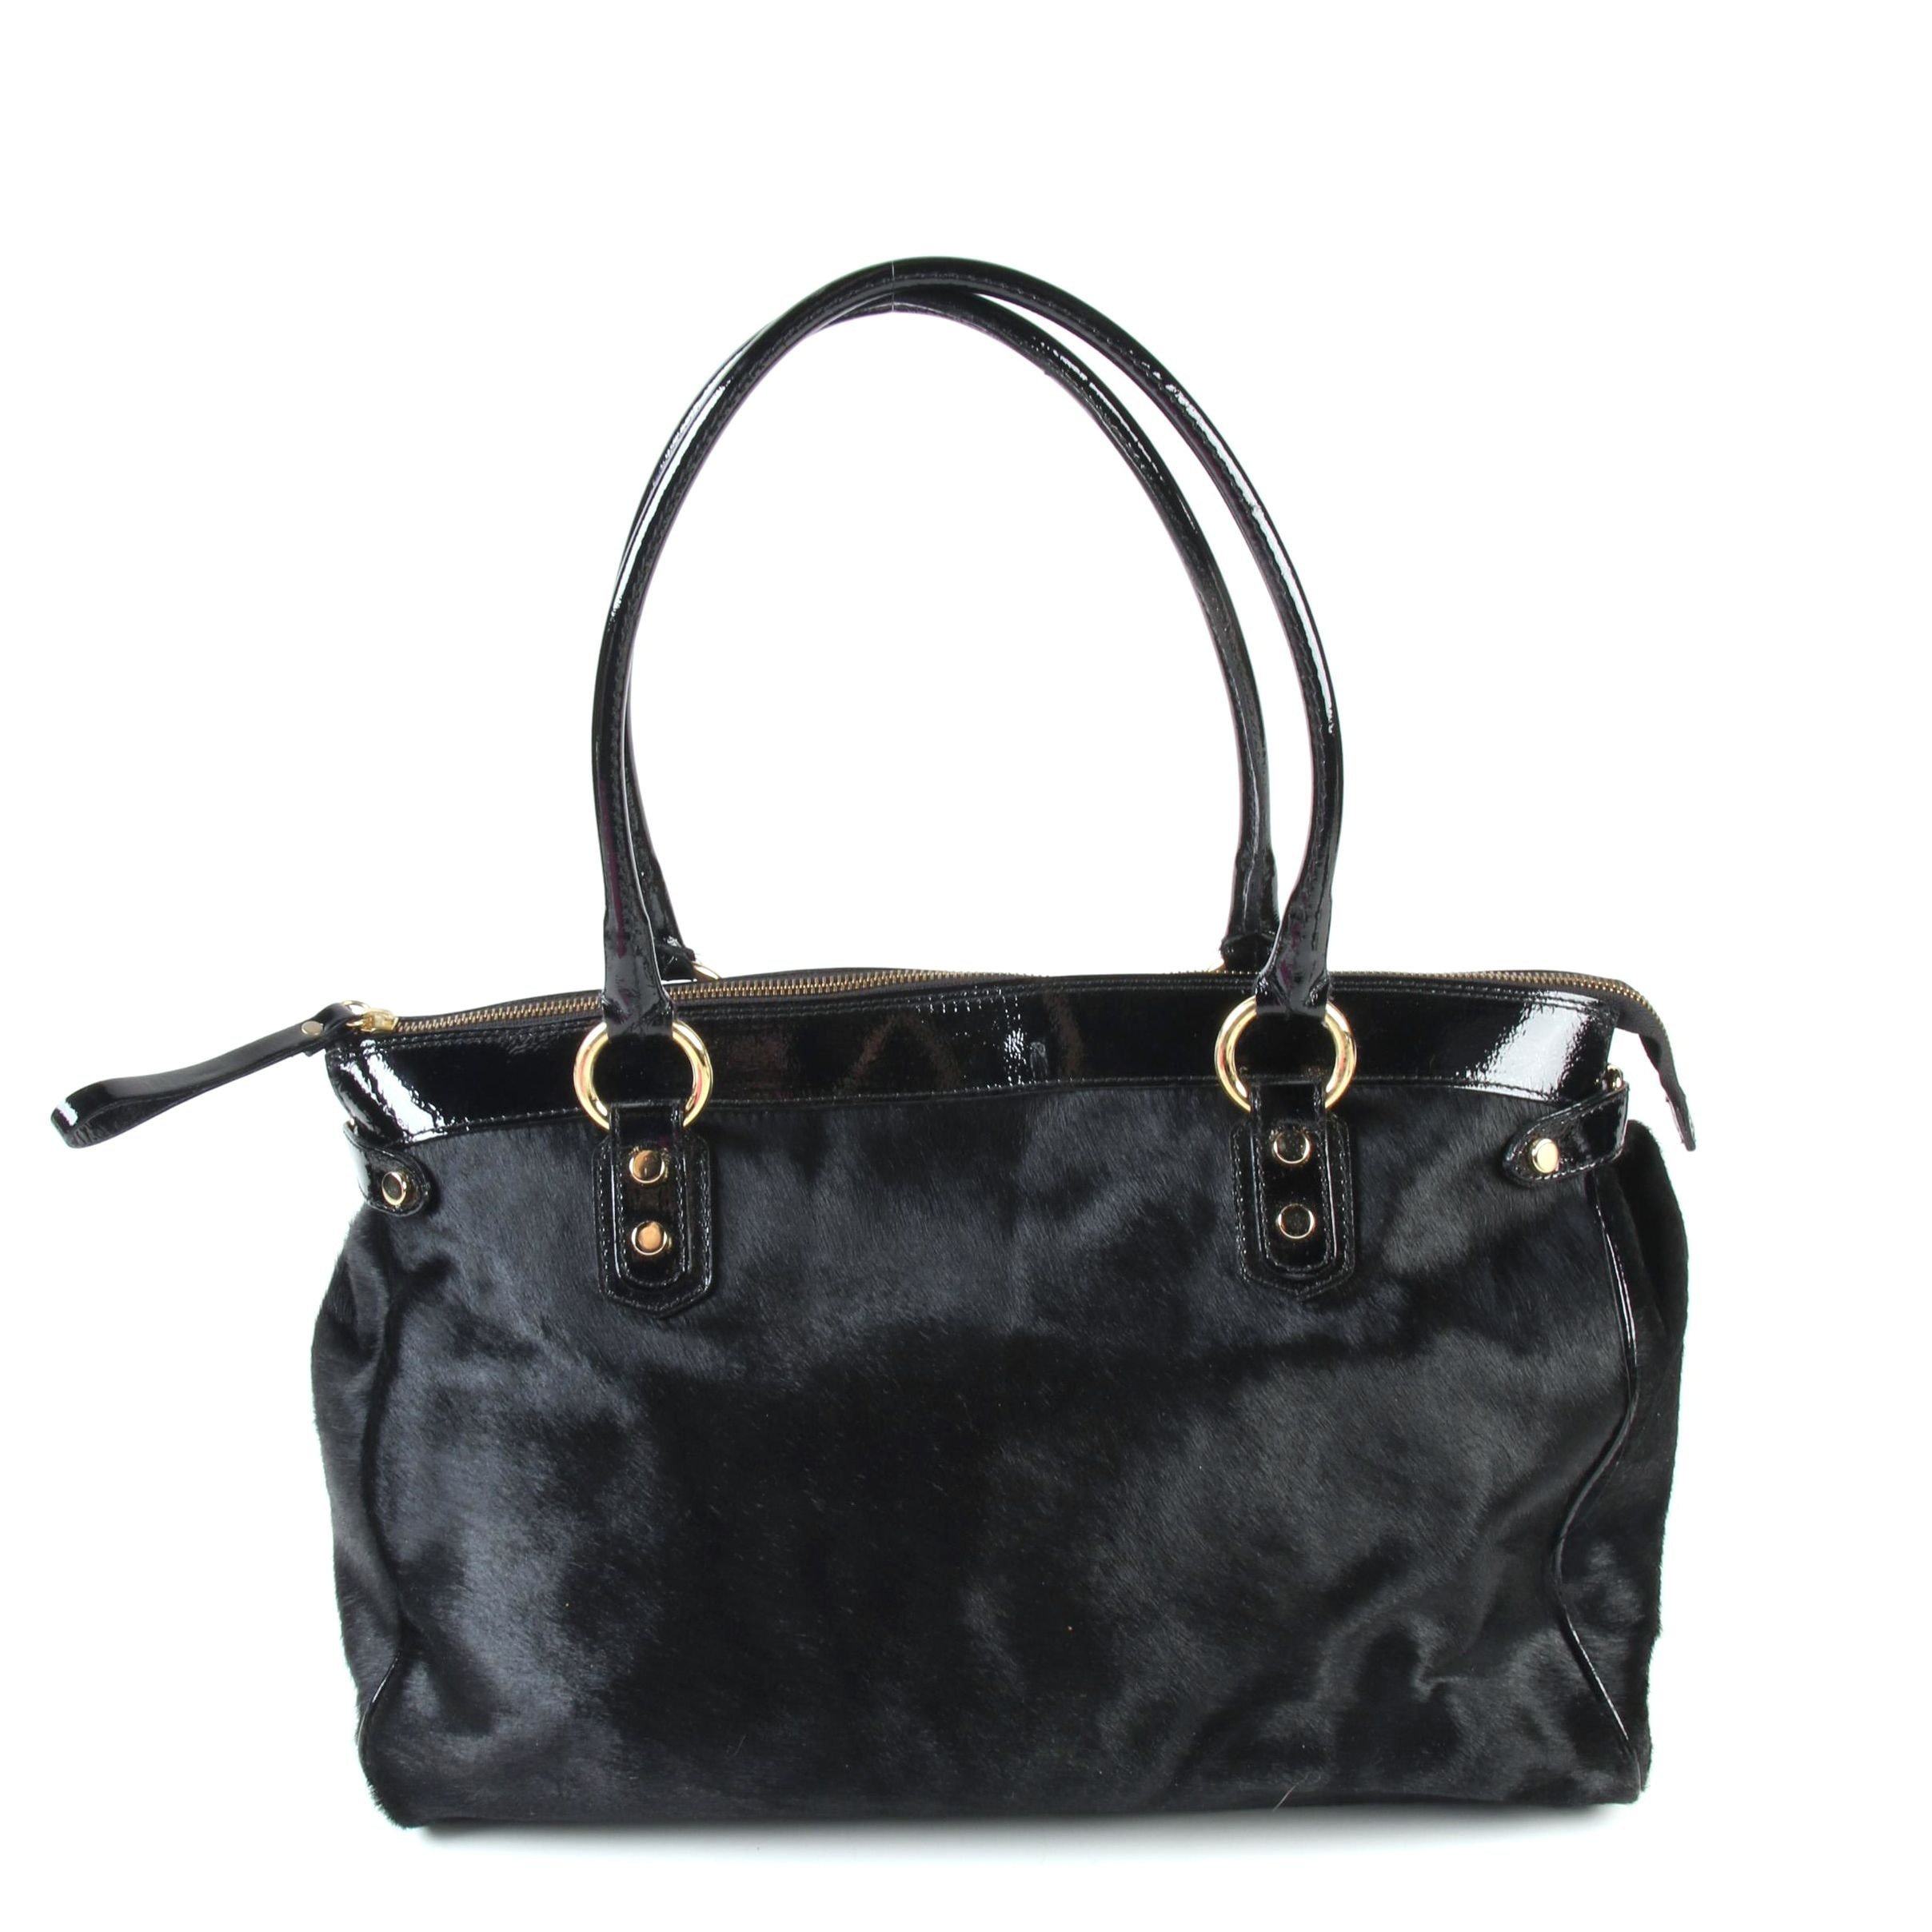 Cavalcanti of Italy Black Pony Hair and Patent Leather East West Satchel